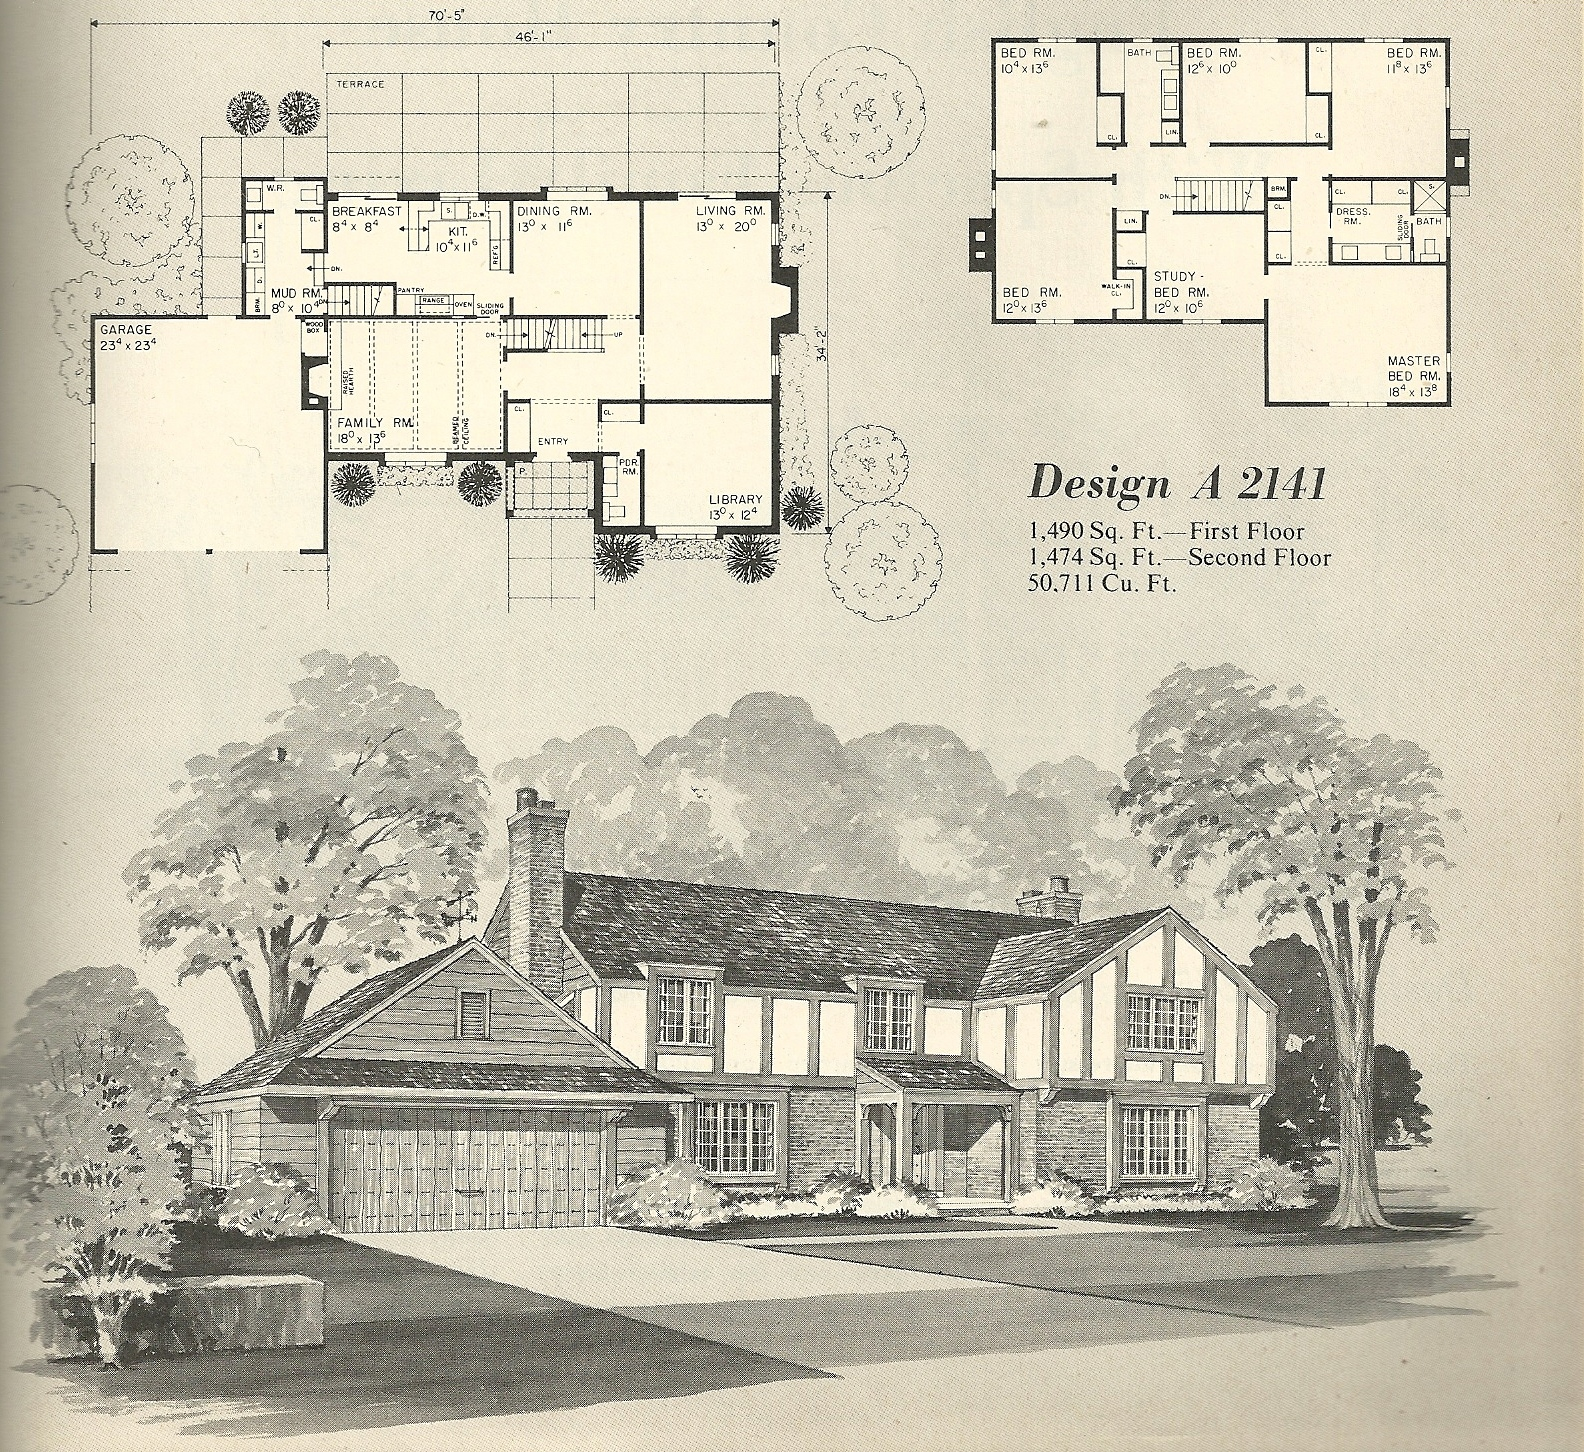 vintage house plans 2141 antique alter ego